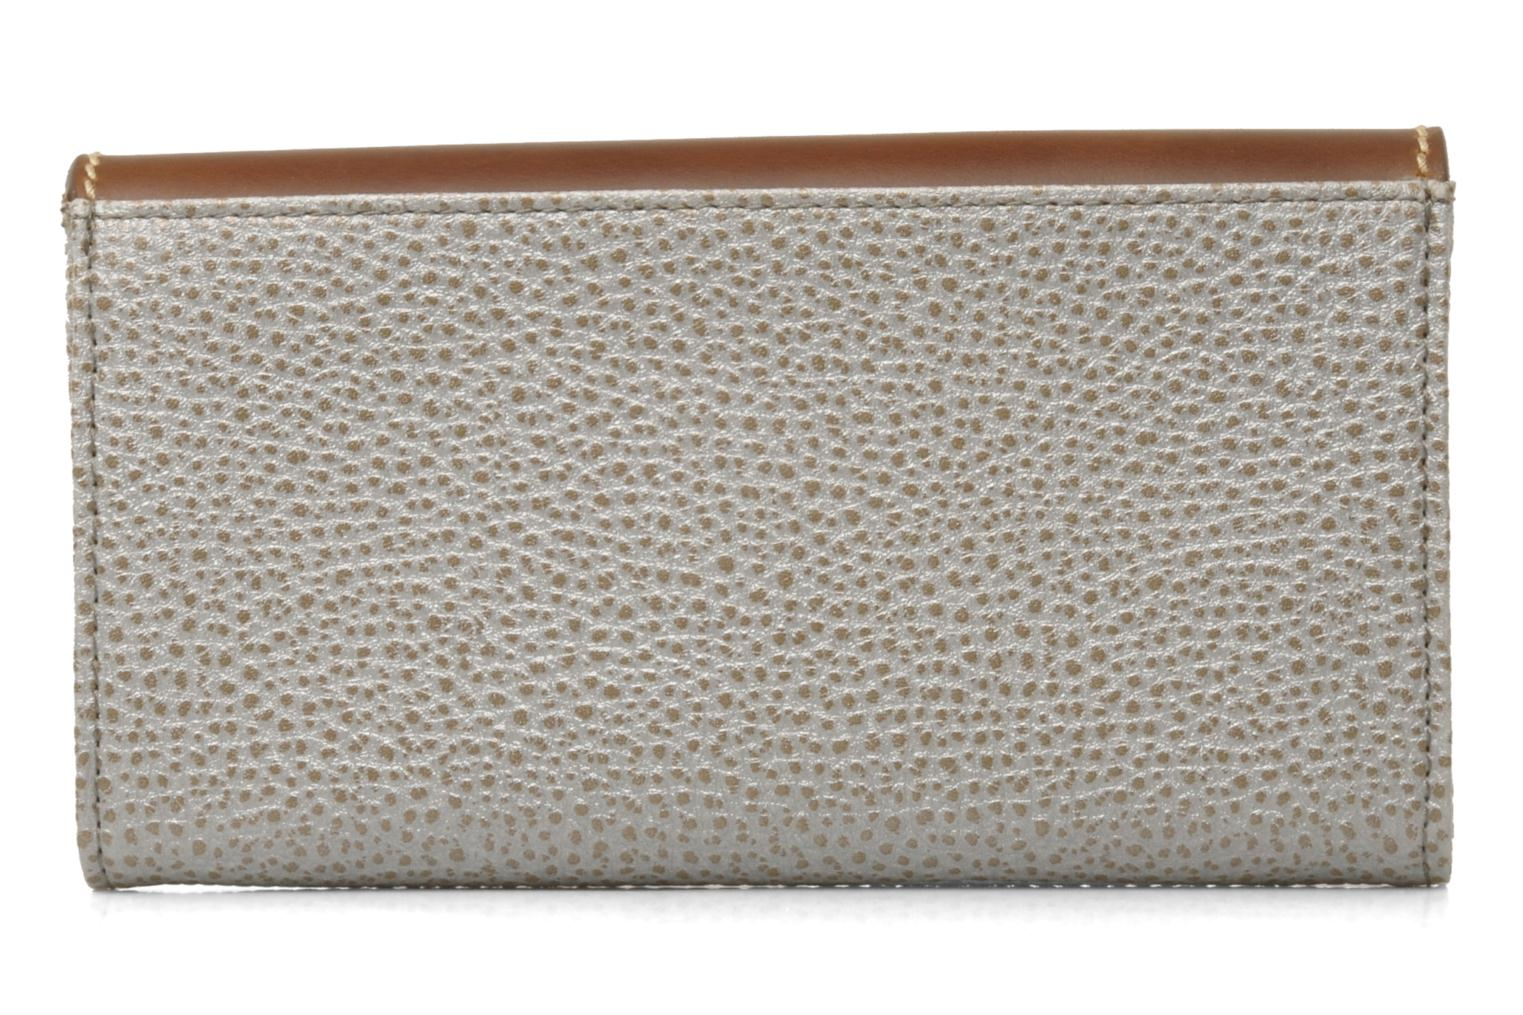 Wallets & cases Paquetage Paco Compagnon Silver front view